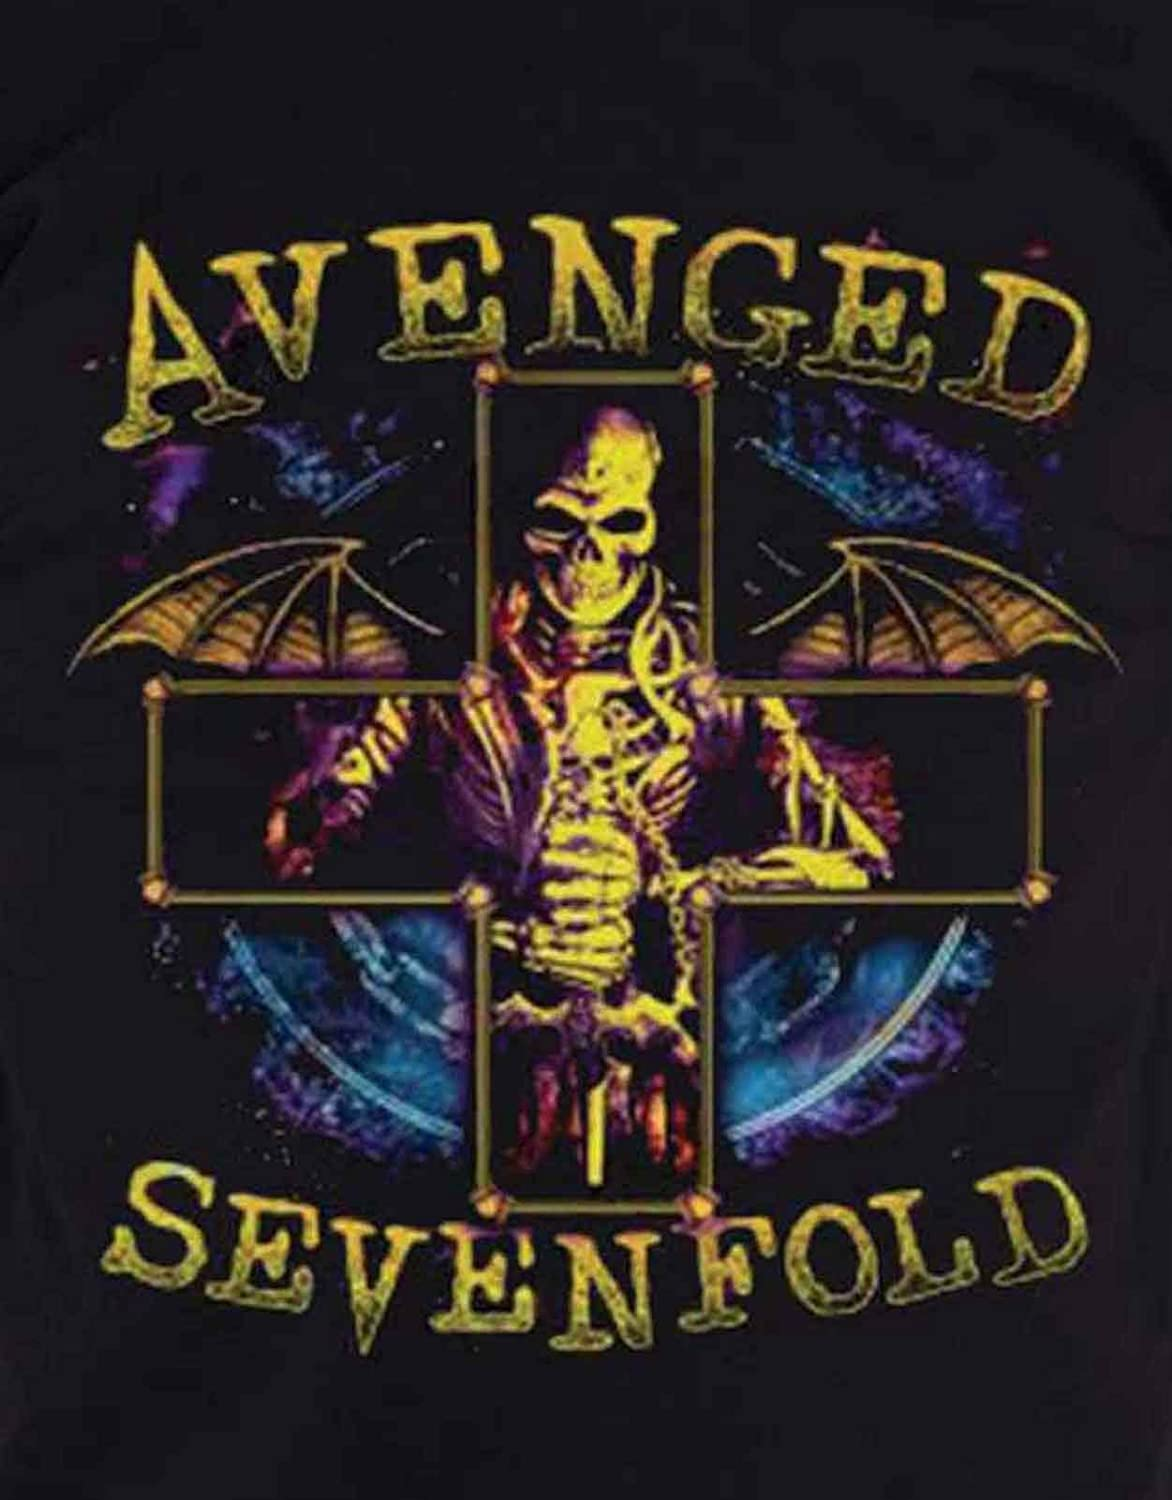 Official Avenged Sevenfold Galaxy T-shirt Unisex Waking The Fallen Stage Band